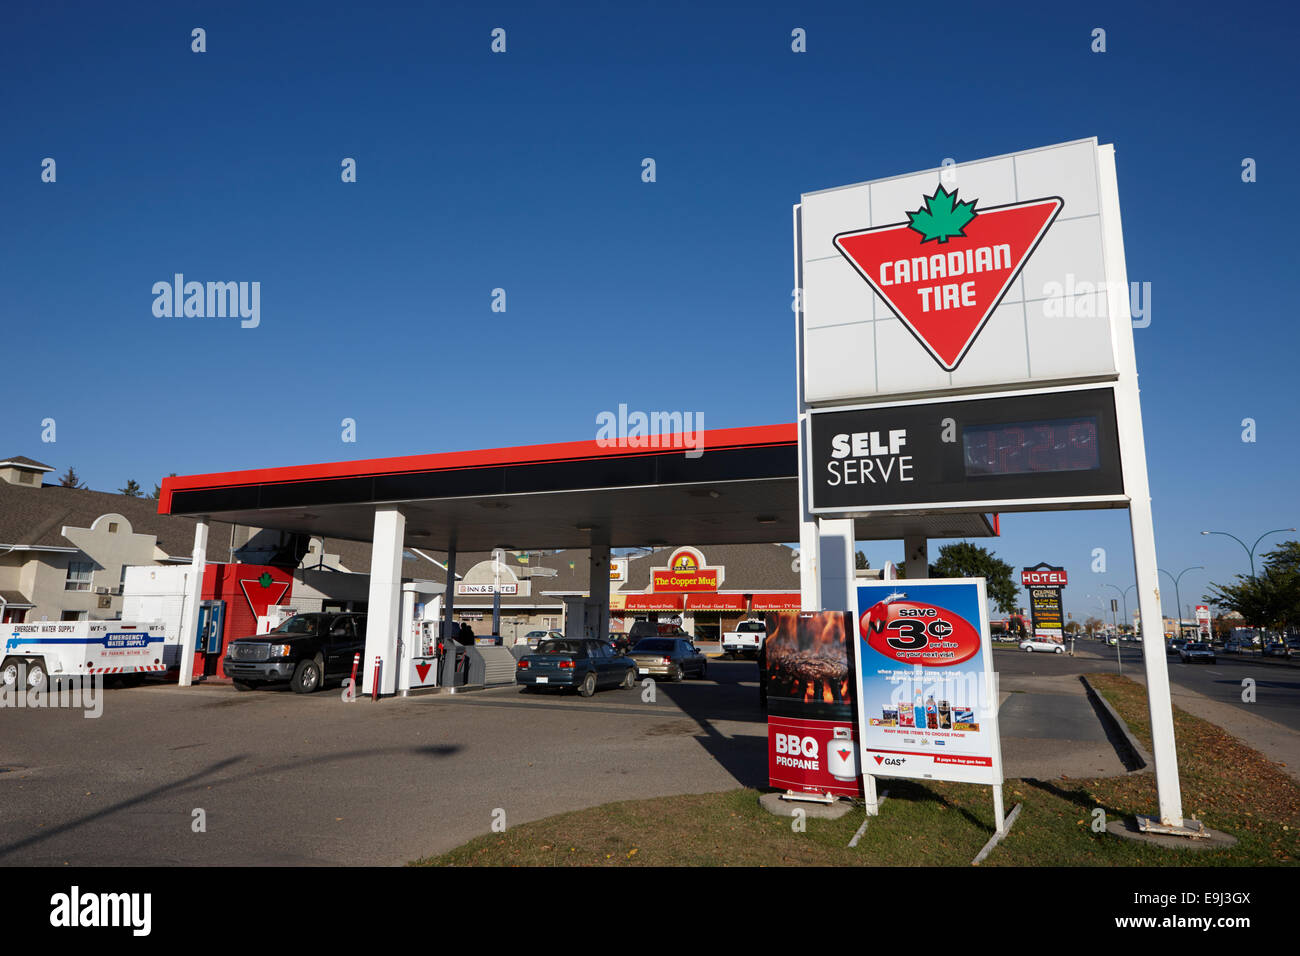 Canadian Gas Station Stock Photos & Canadian Gas Station